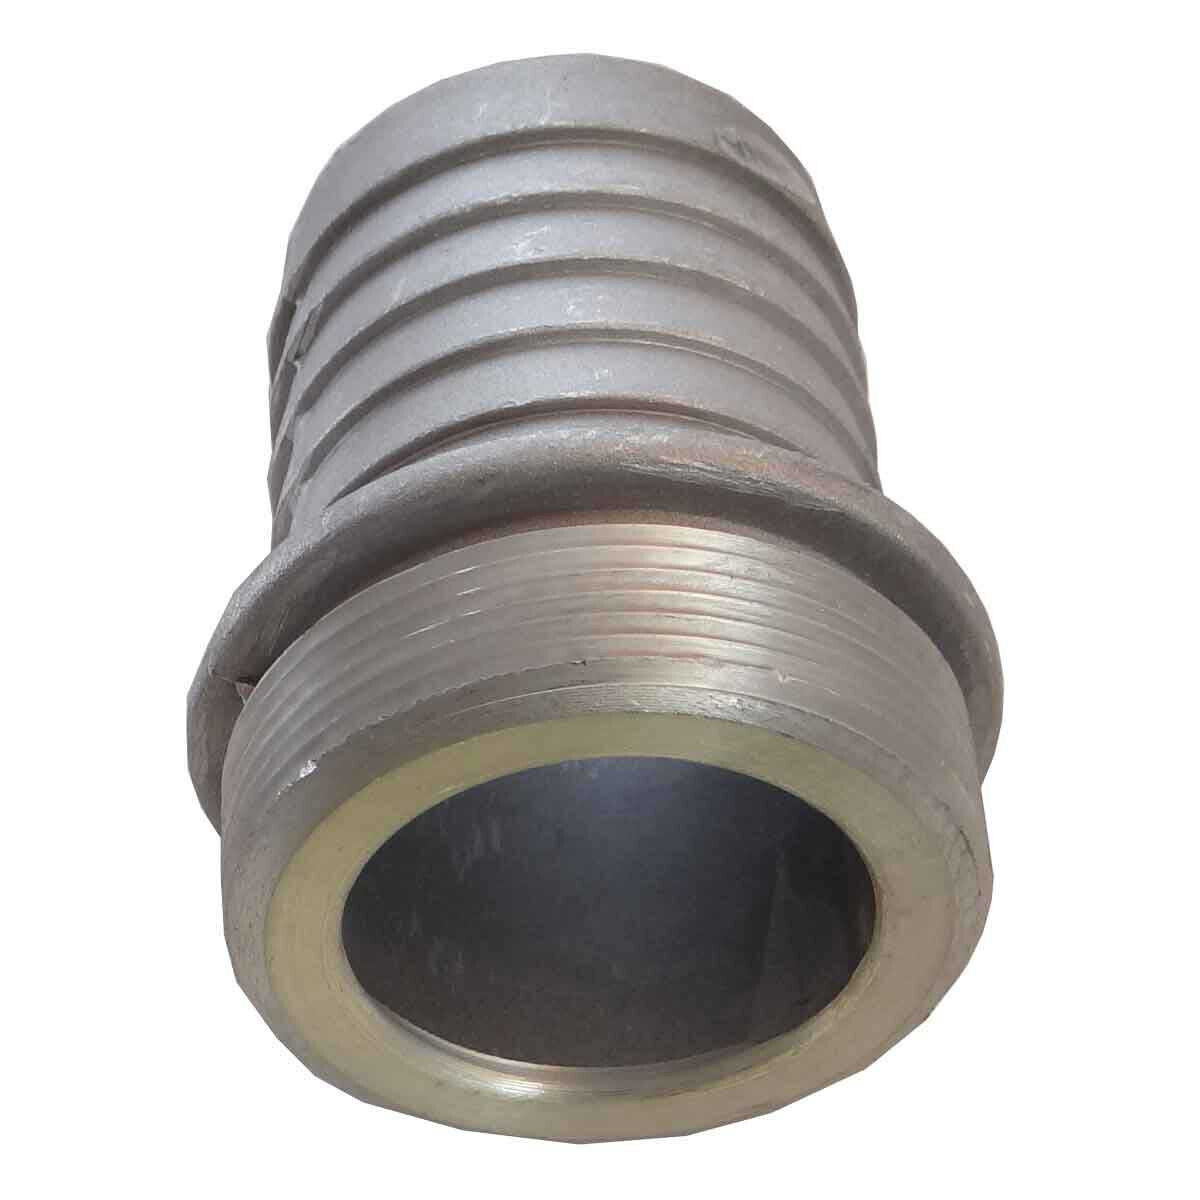 Wacker 2 inch Pump Strainer Hose Coupling